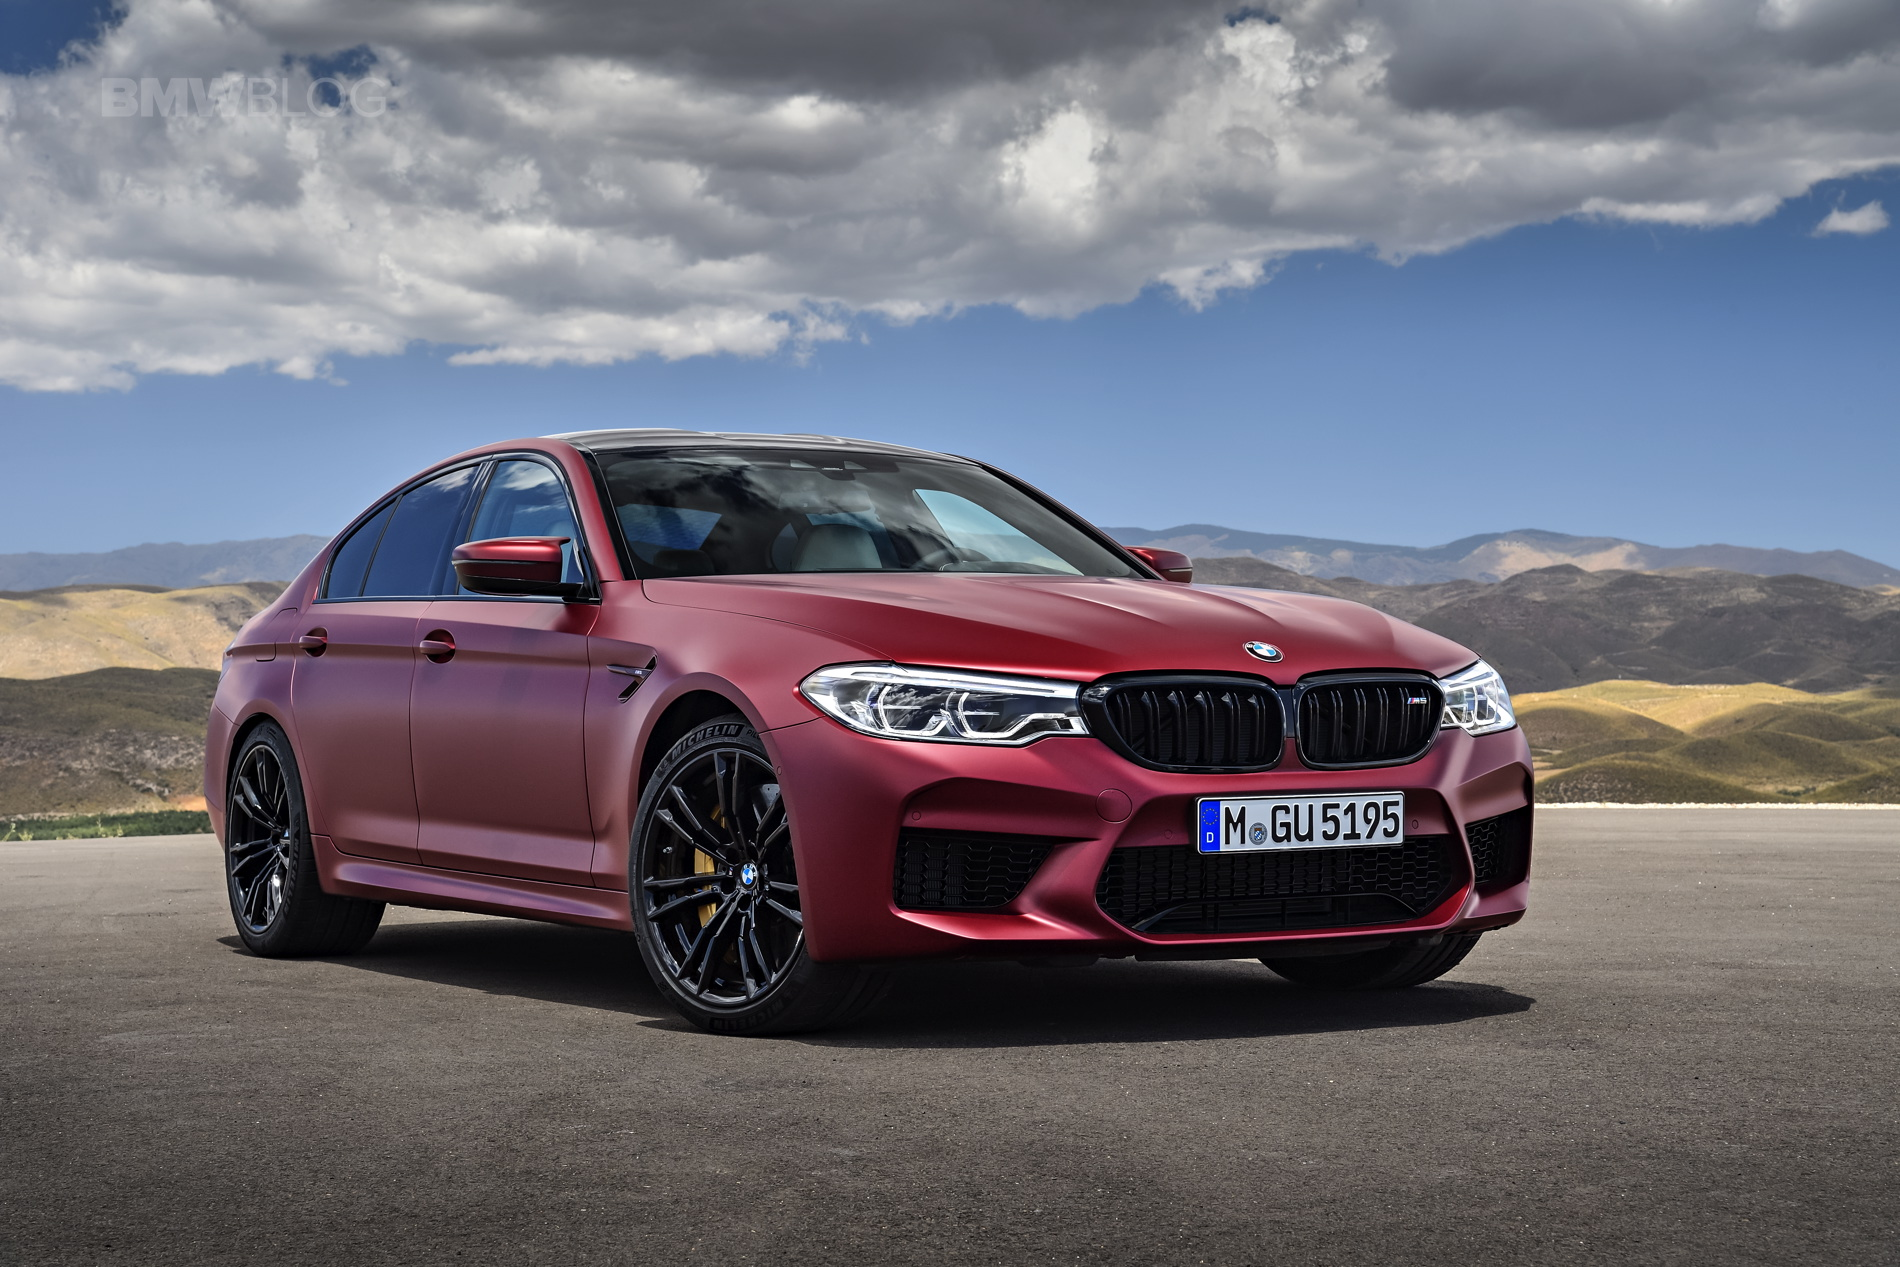 37 Best 2020 BMW M5 Concept and Review